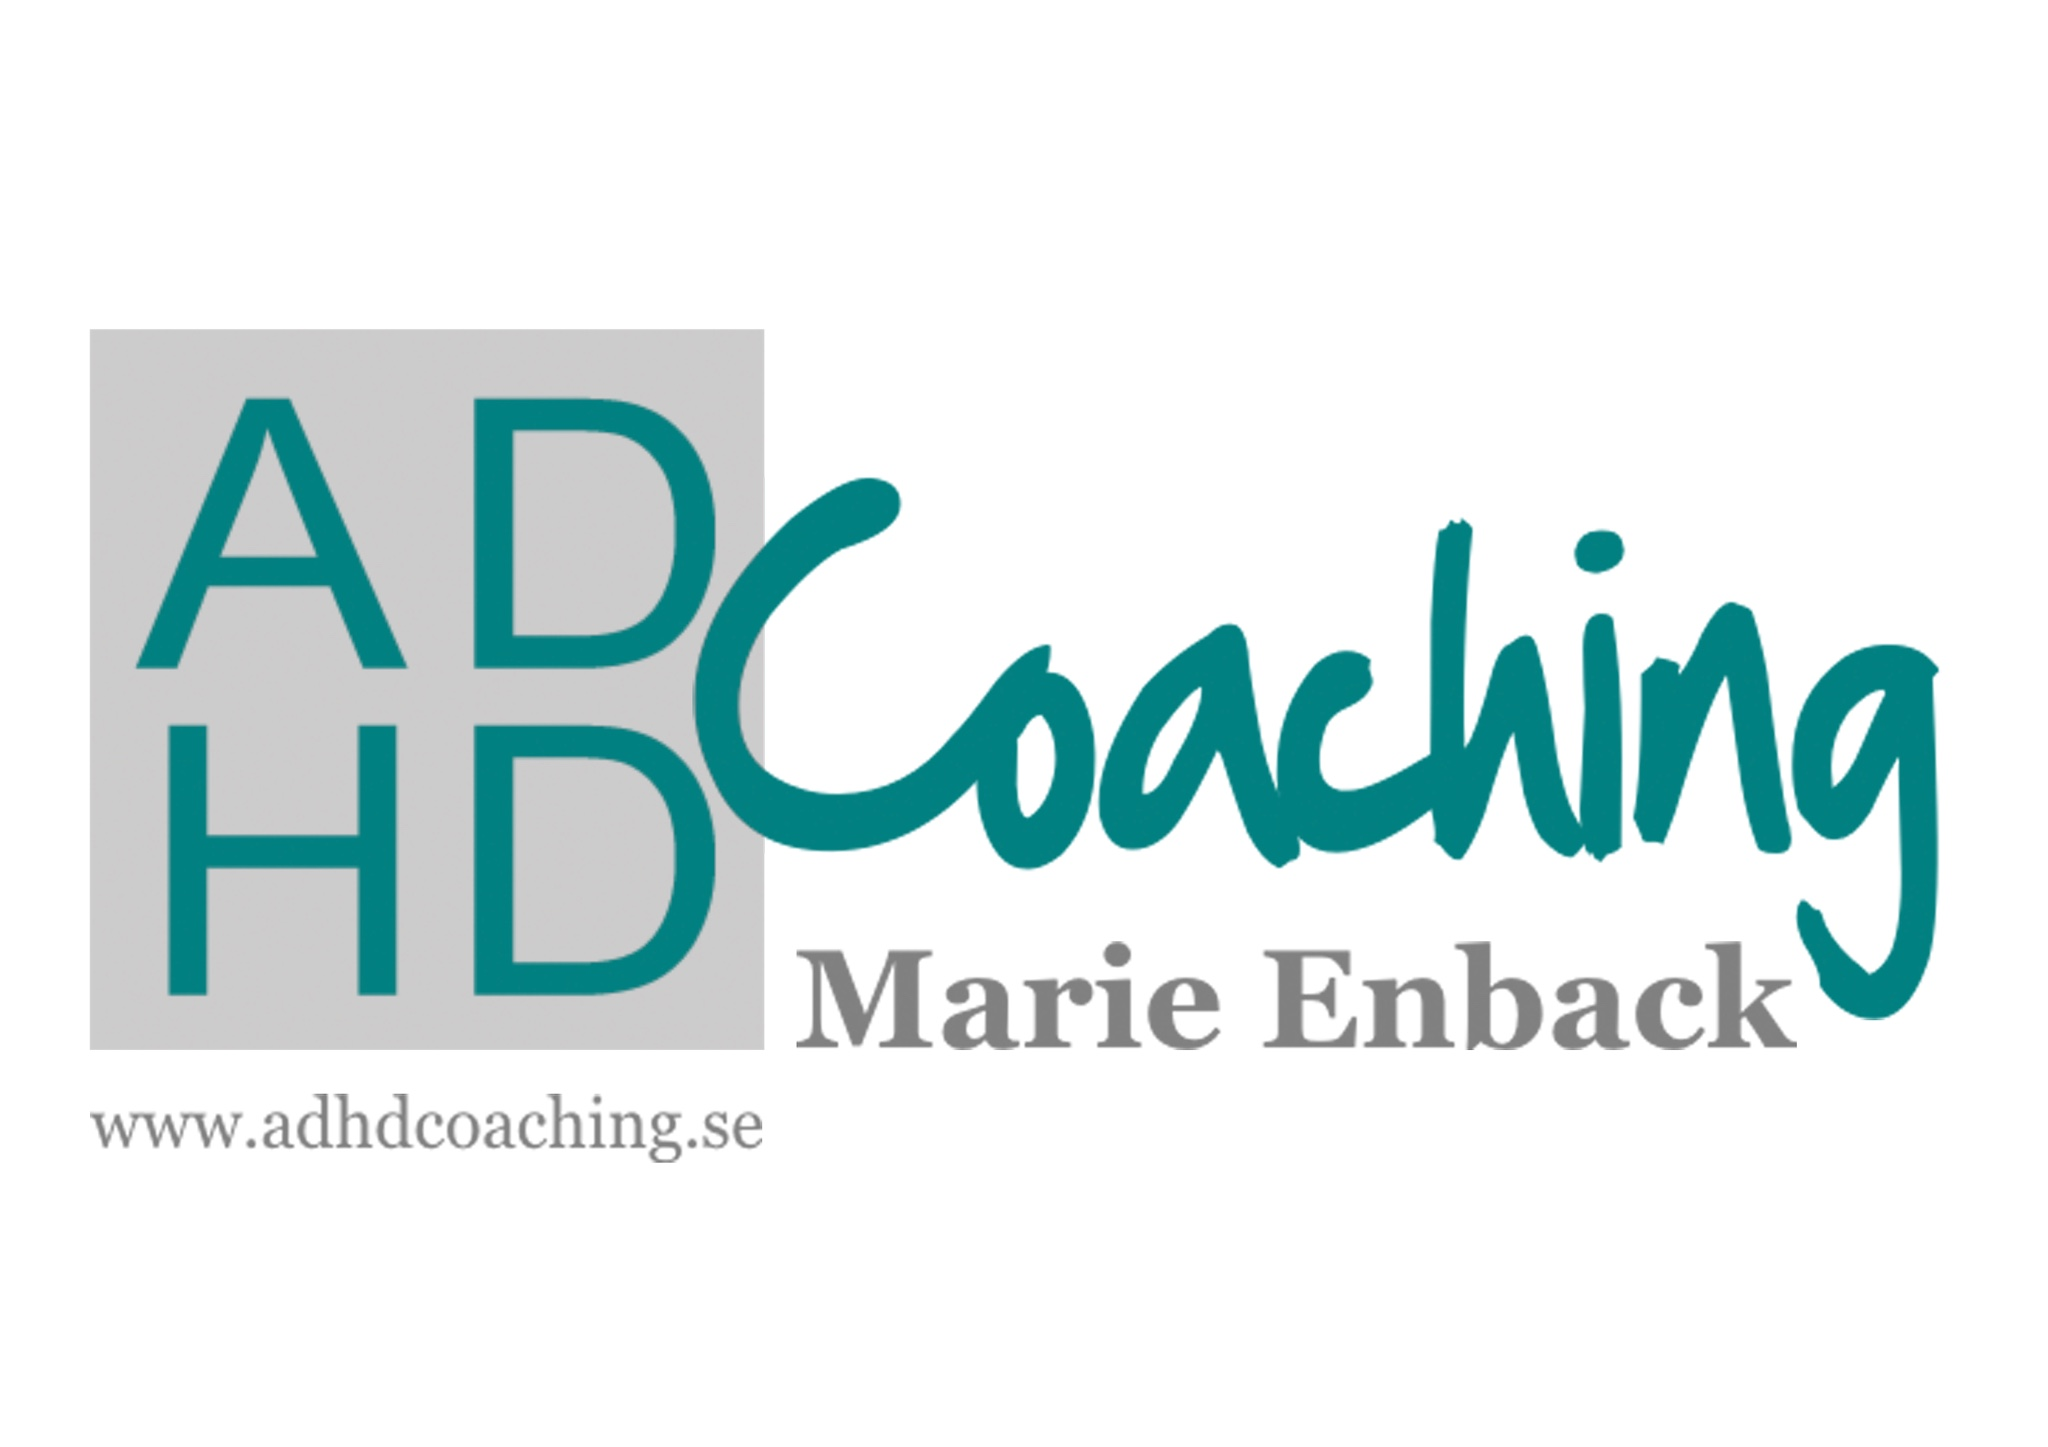 ADHD Coaching Sverige Sweden